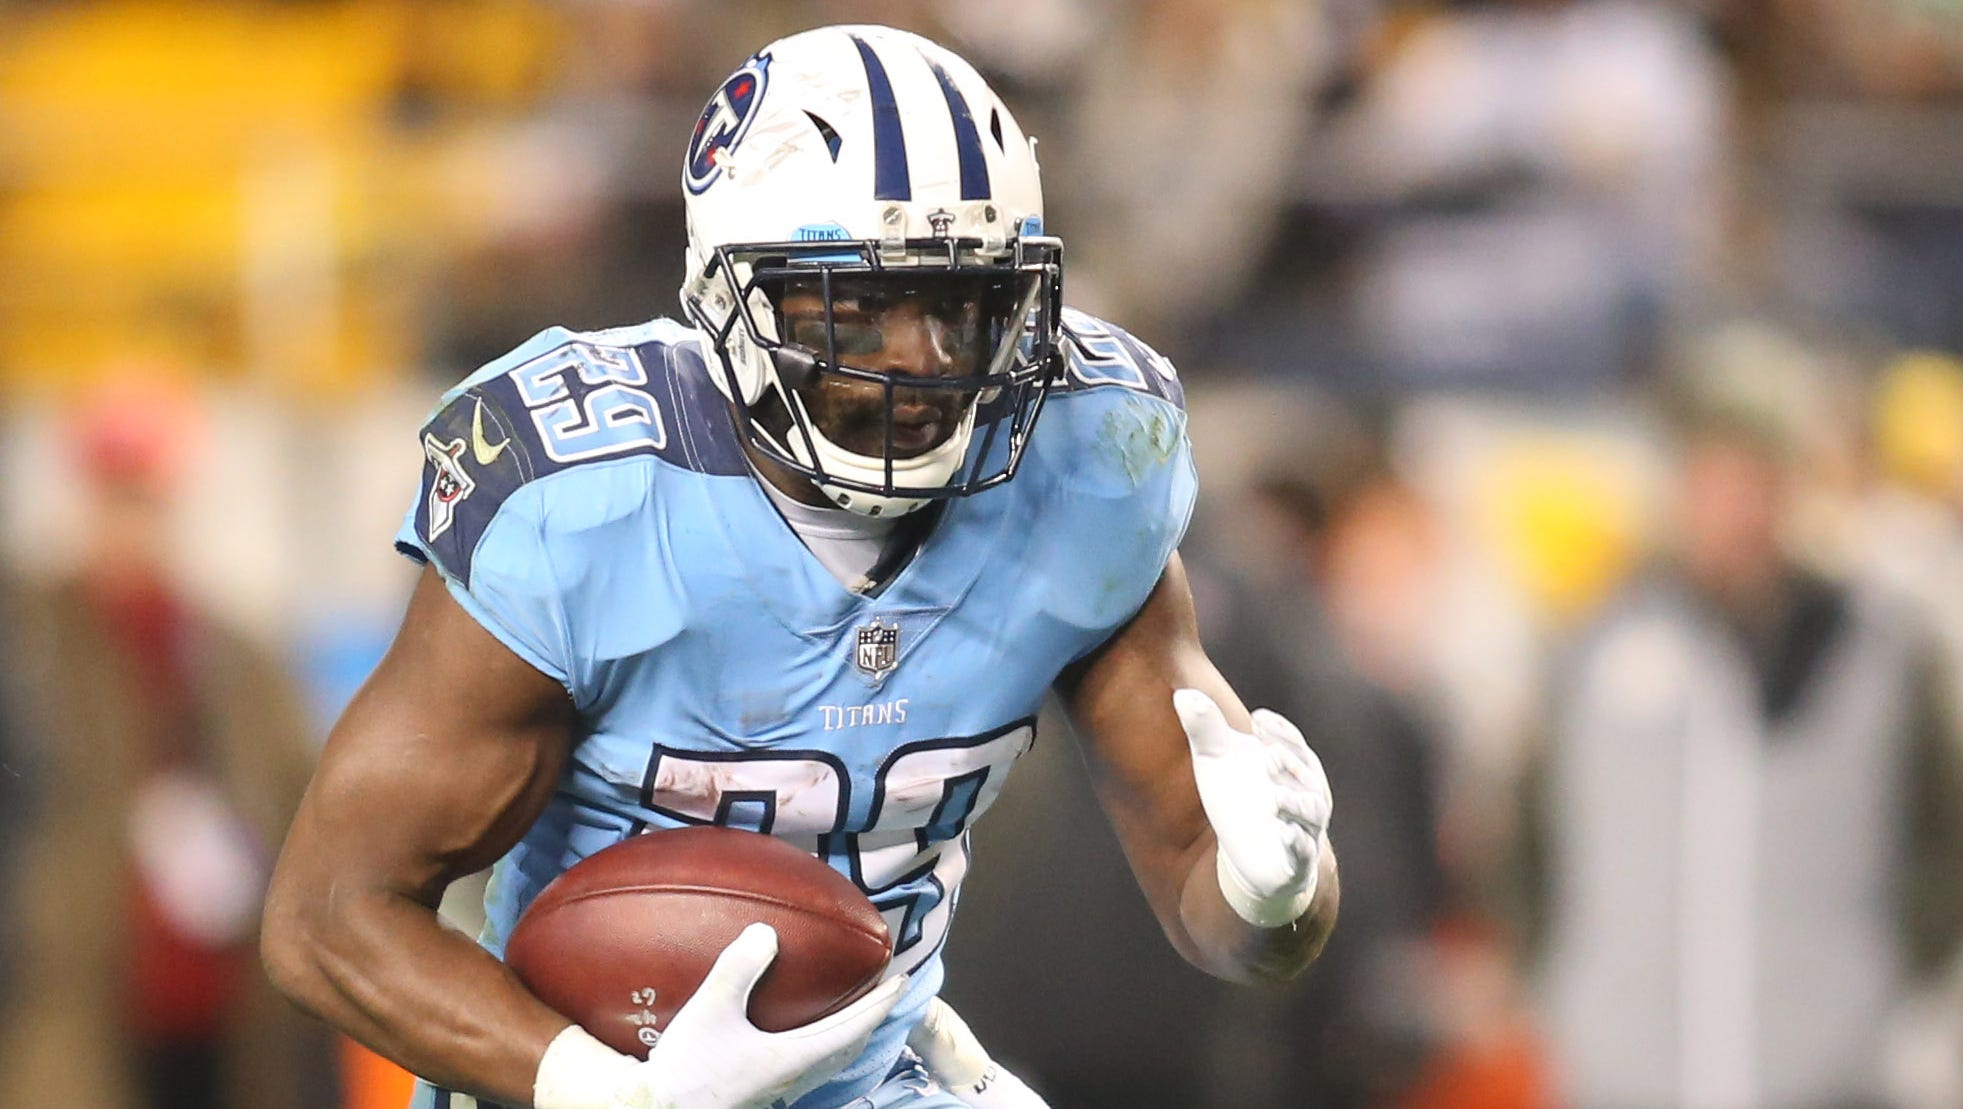 DeMarco Murray announces retirement from NFL after seven seasons